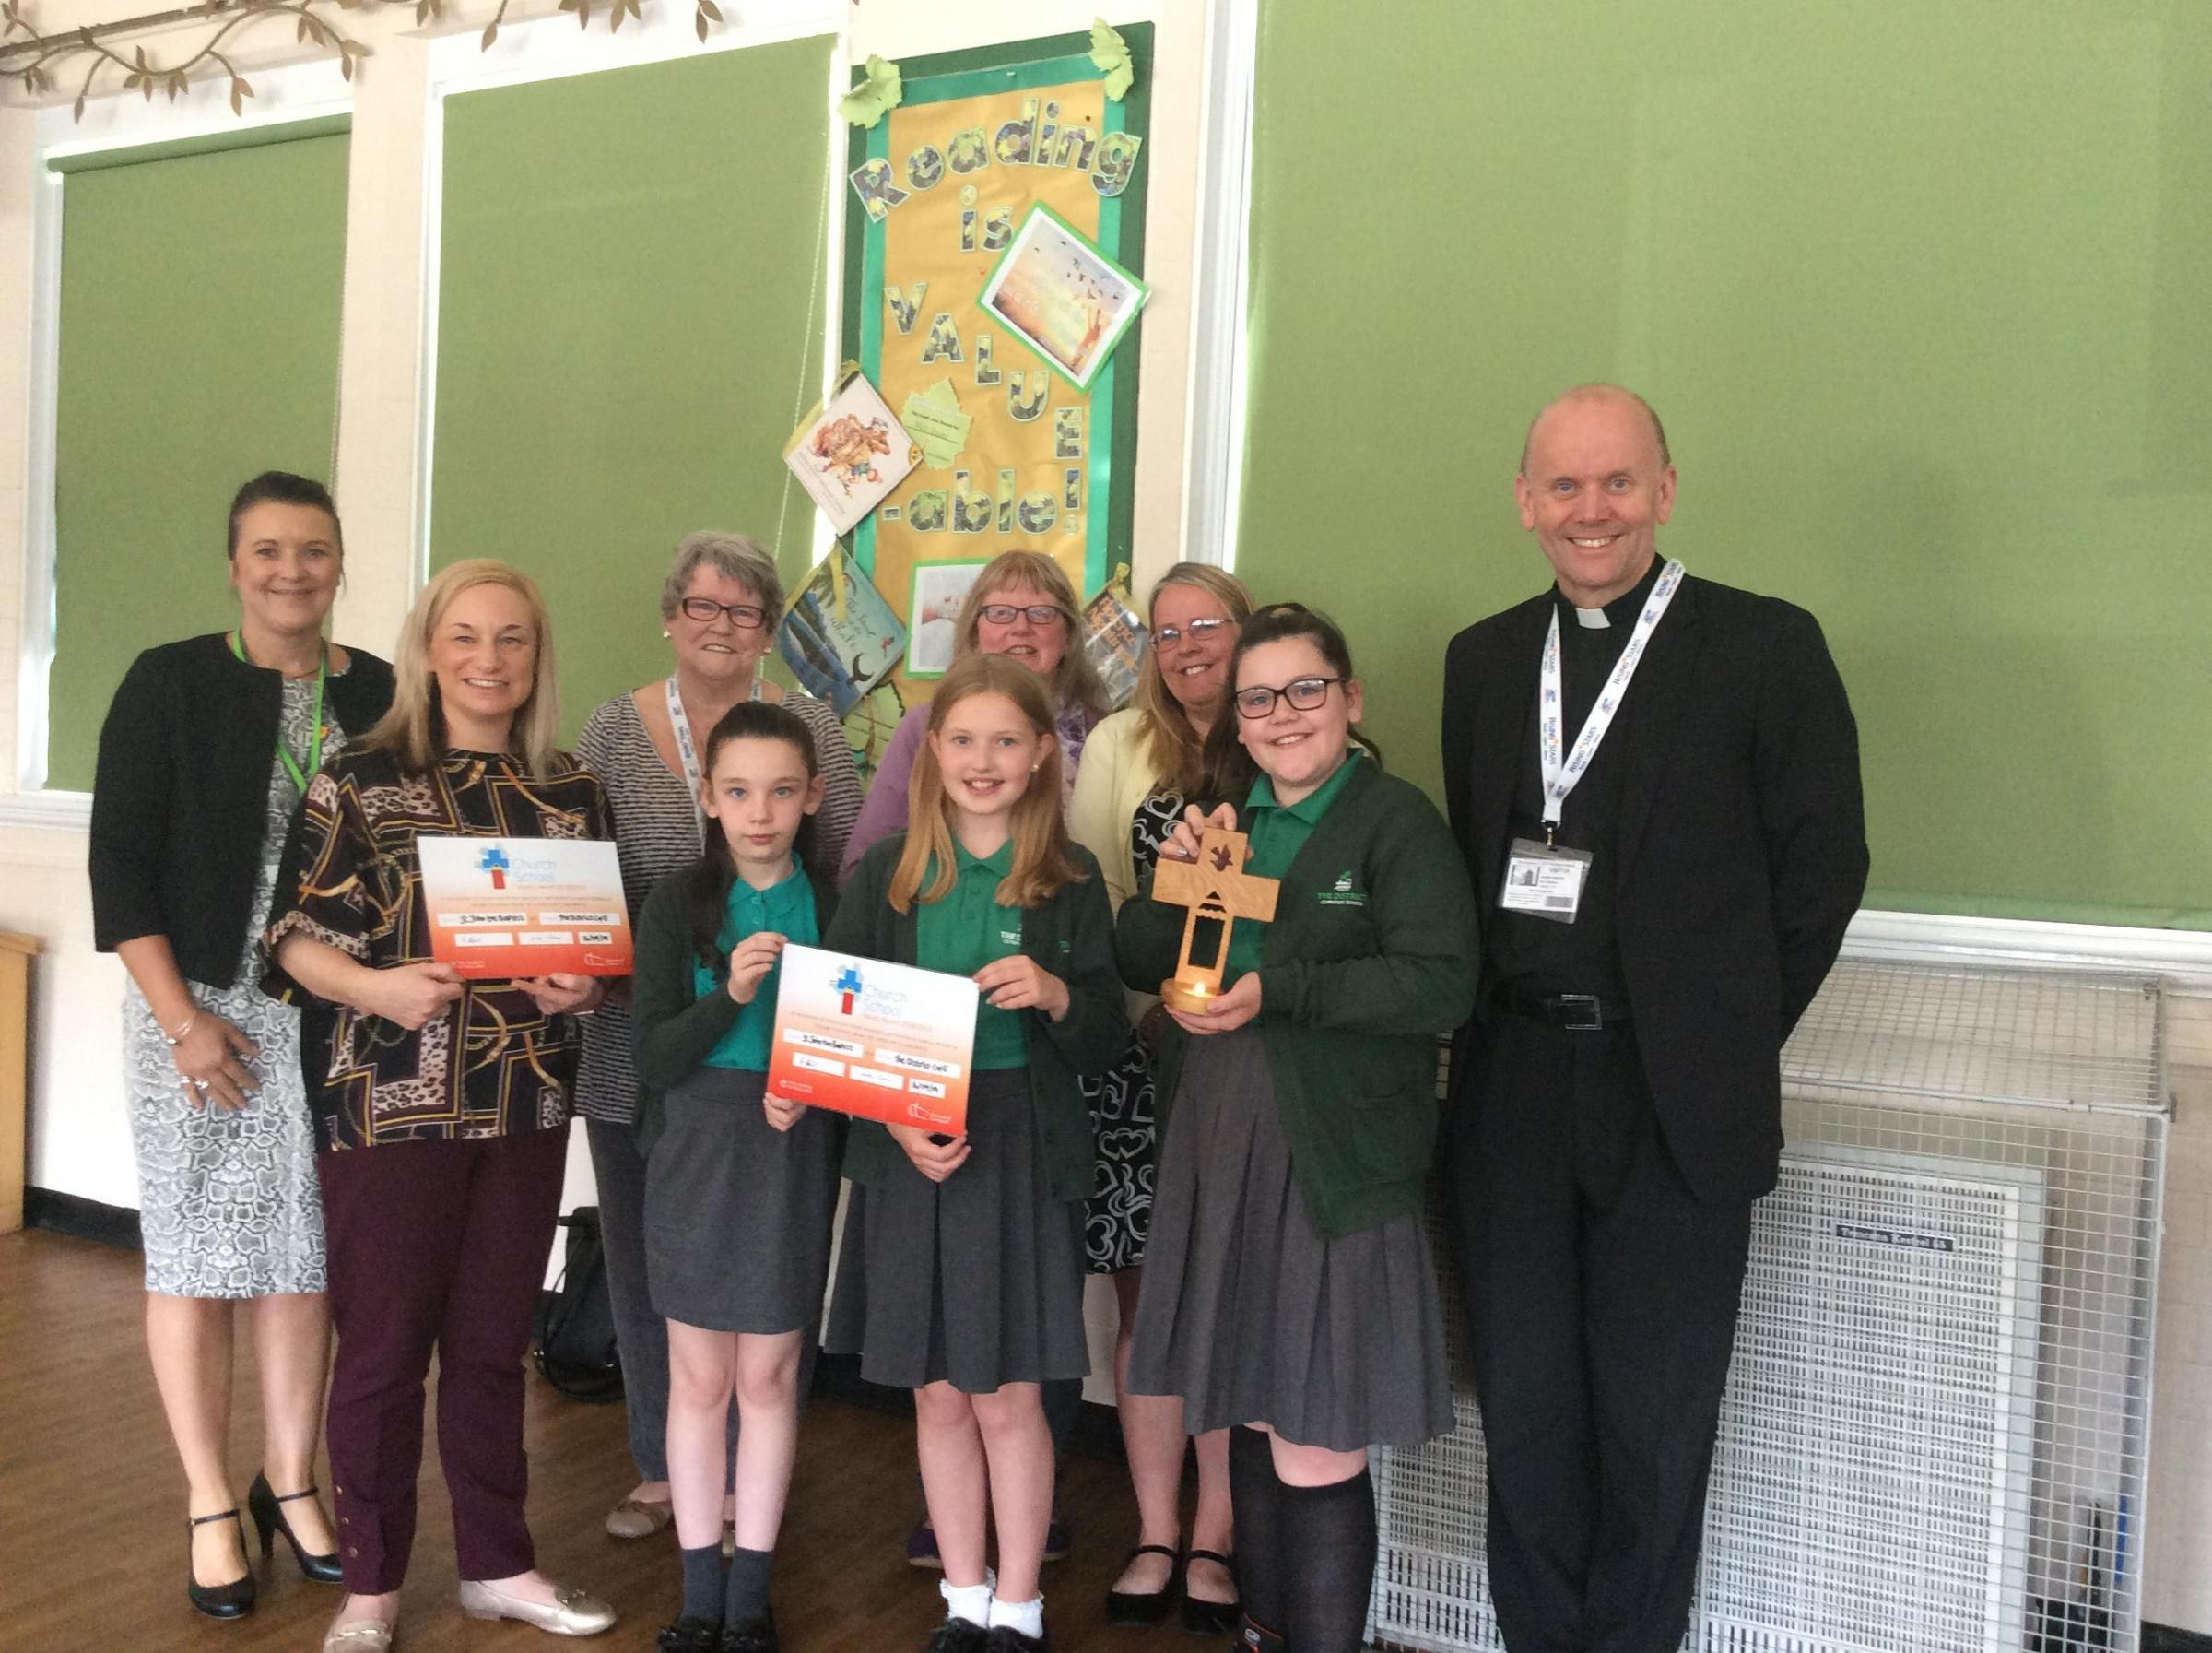 Award for school which upholds Christian values